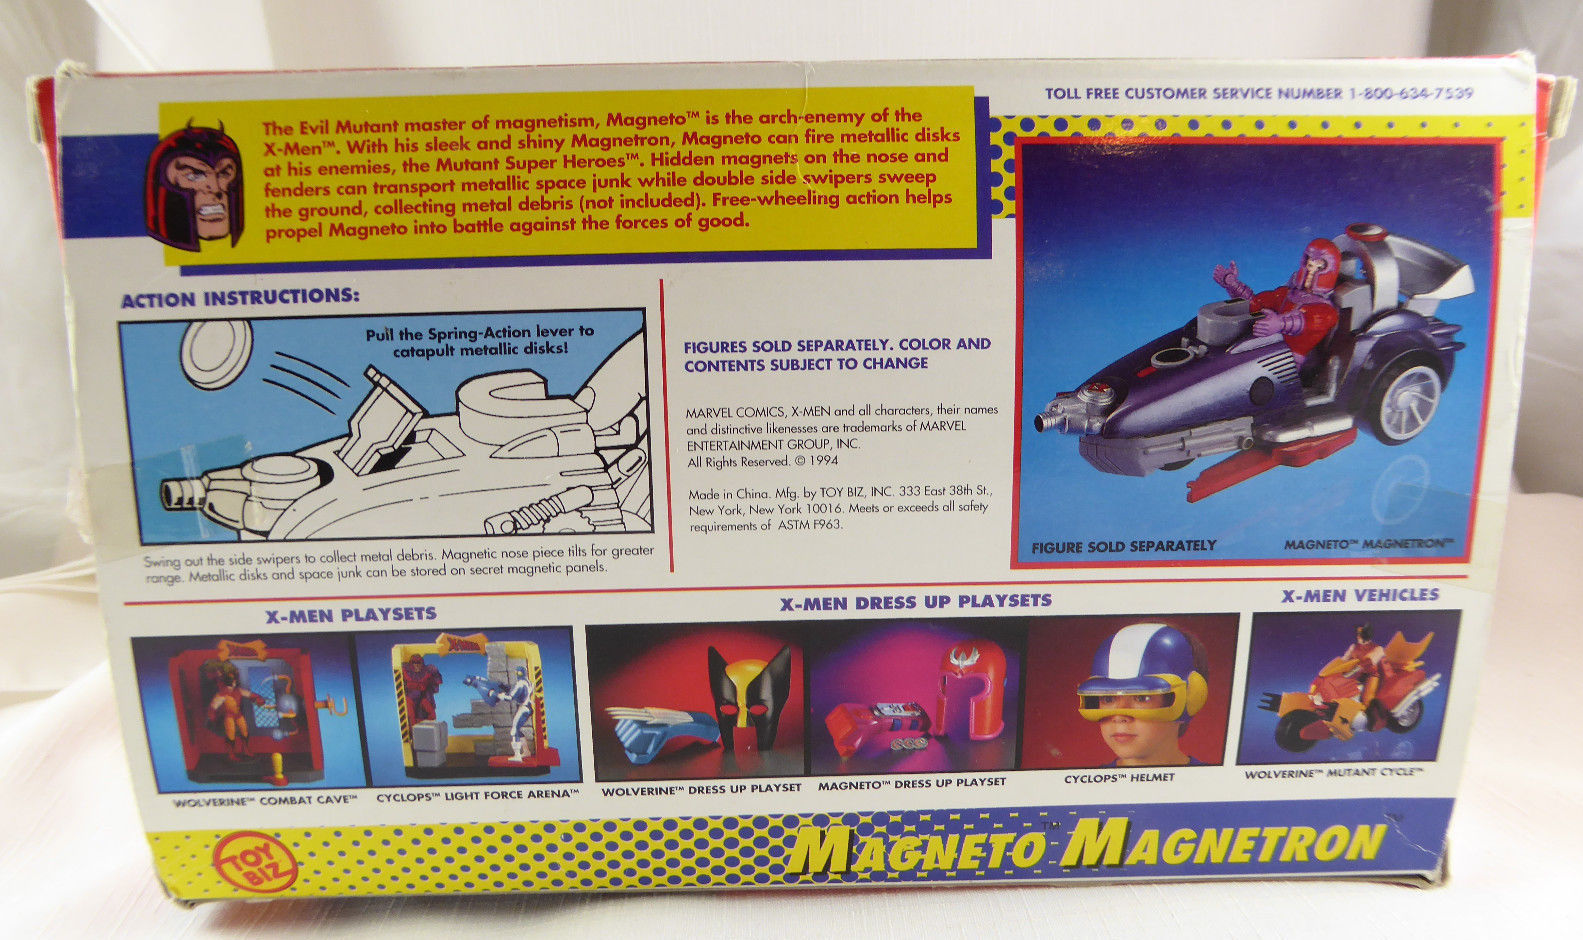 1994~X-MEN MAGNETO MAGNETRON ~ EVIL MUTANT ~ CATAPULT LAUNCHER ~ HIDDEN PANELS